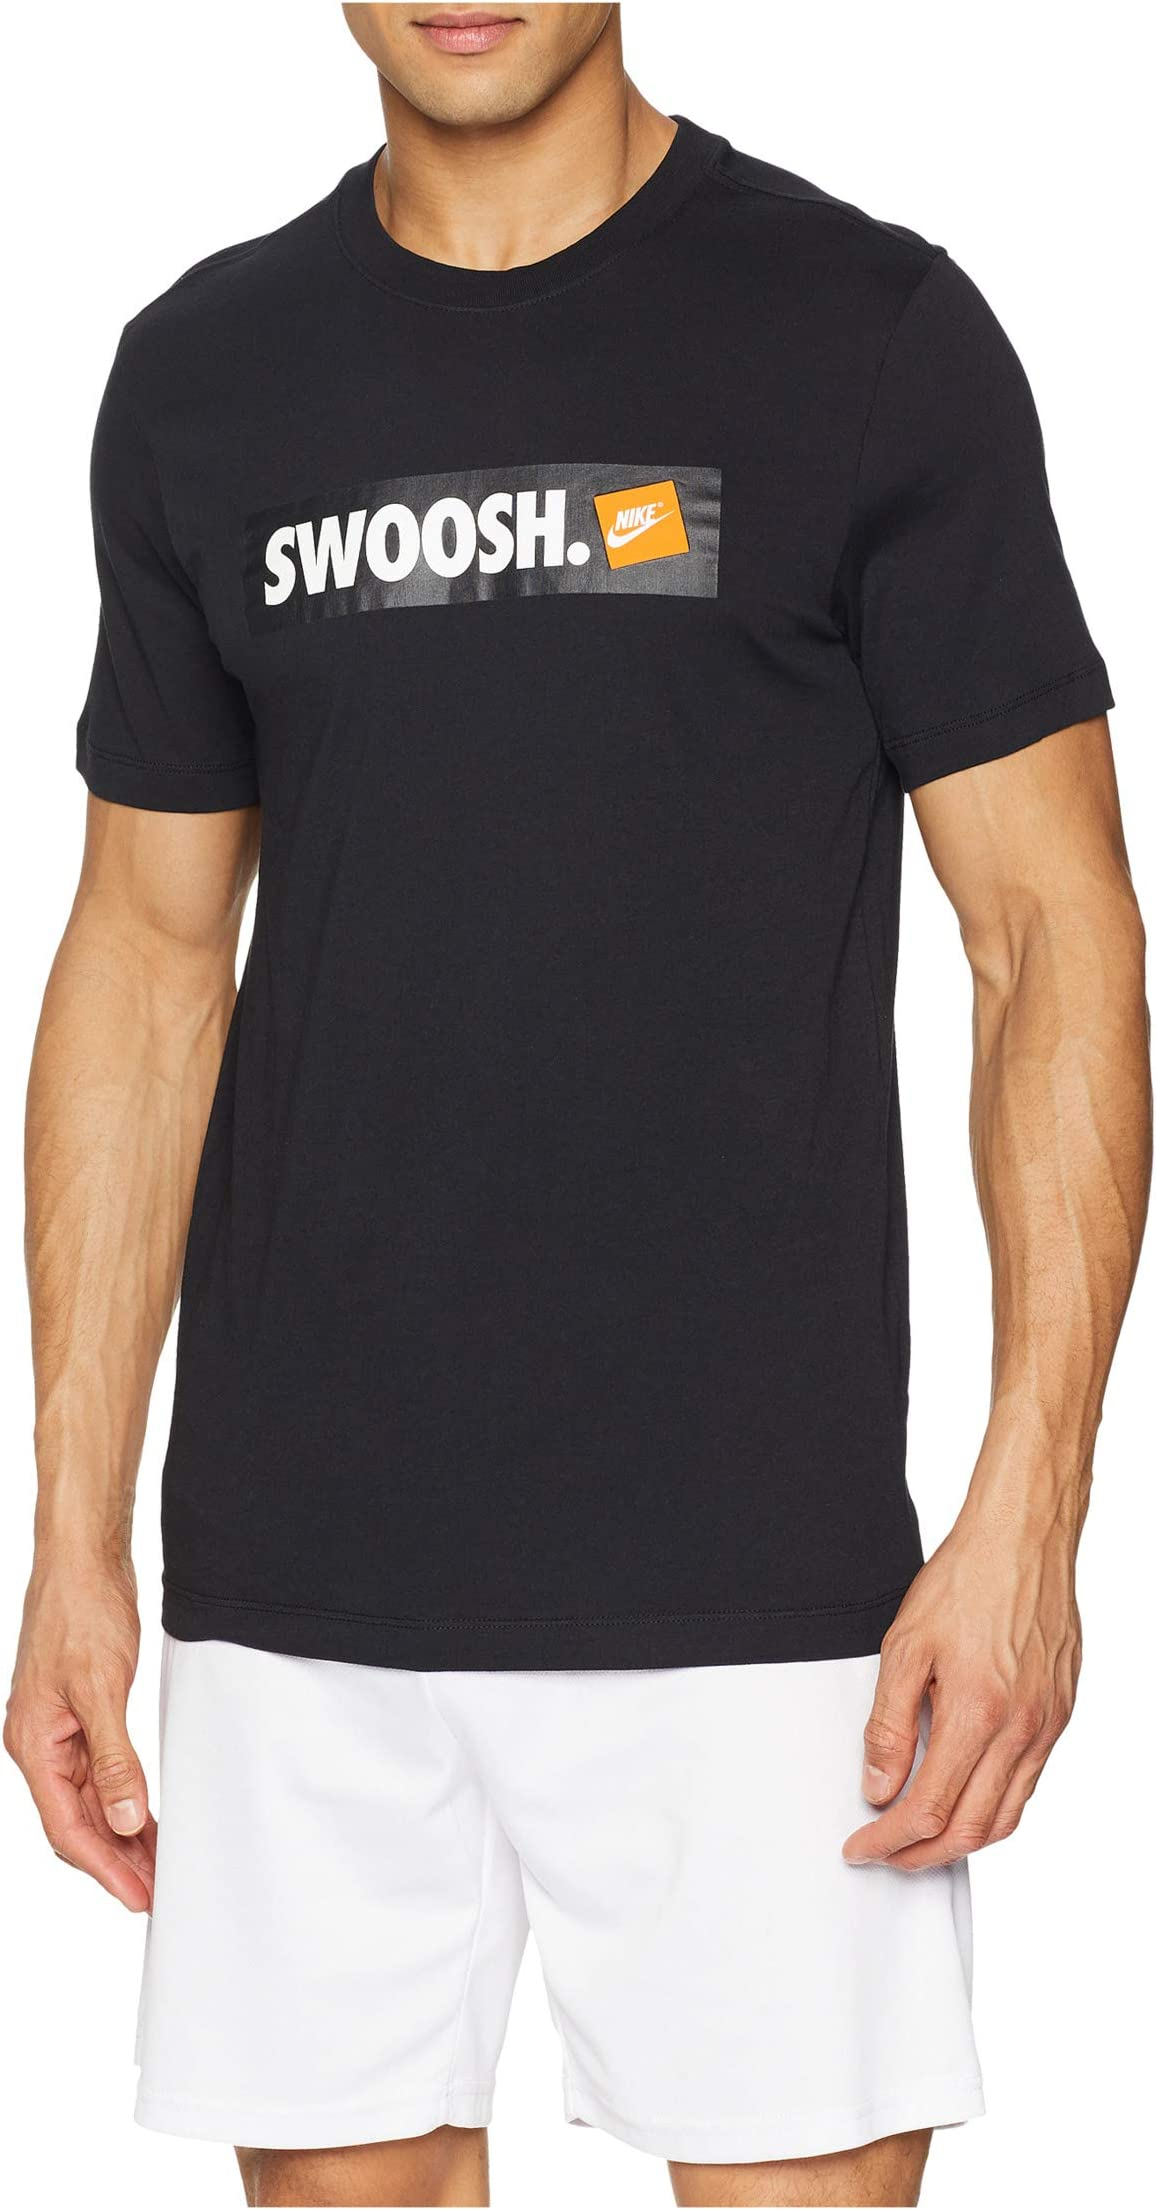 Nike NSW T-Shirt Swoosh Bumper Sticker